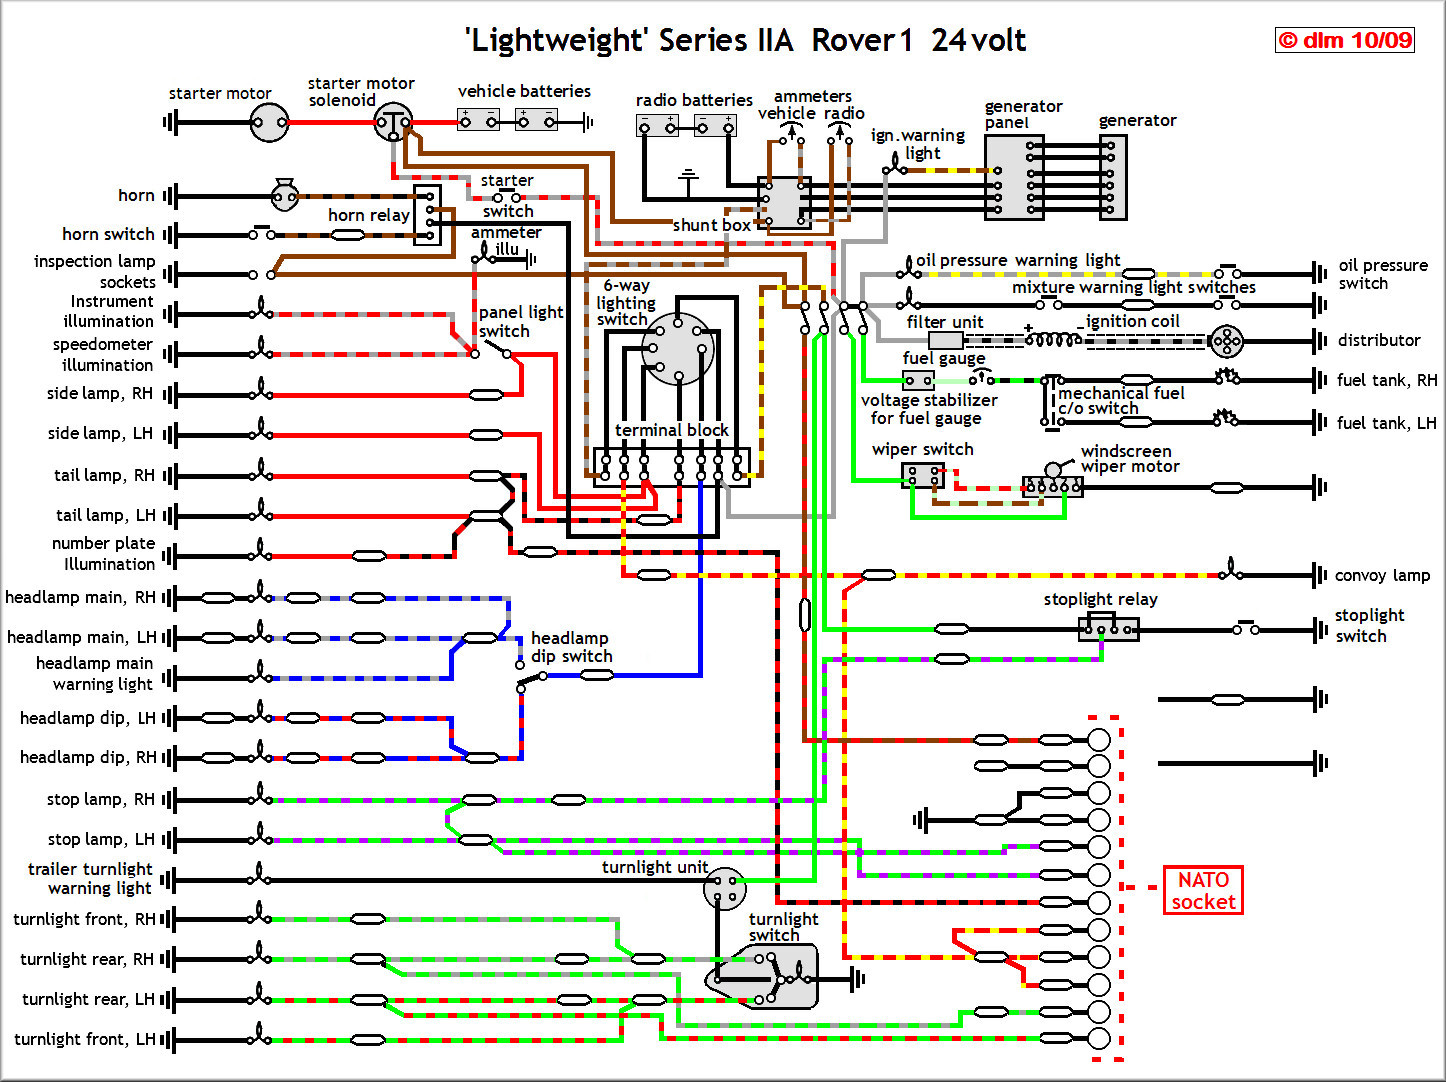 1999 Porsche 911 Fuse Box Diagram Wiring Library 1978 Land Rover 24v List Of Schematic Circuit U2022 2001 Discovery 2003